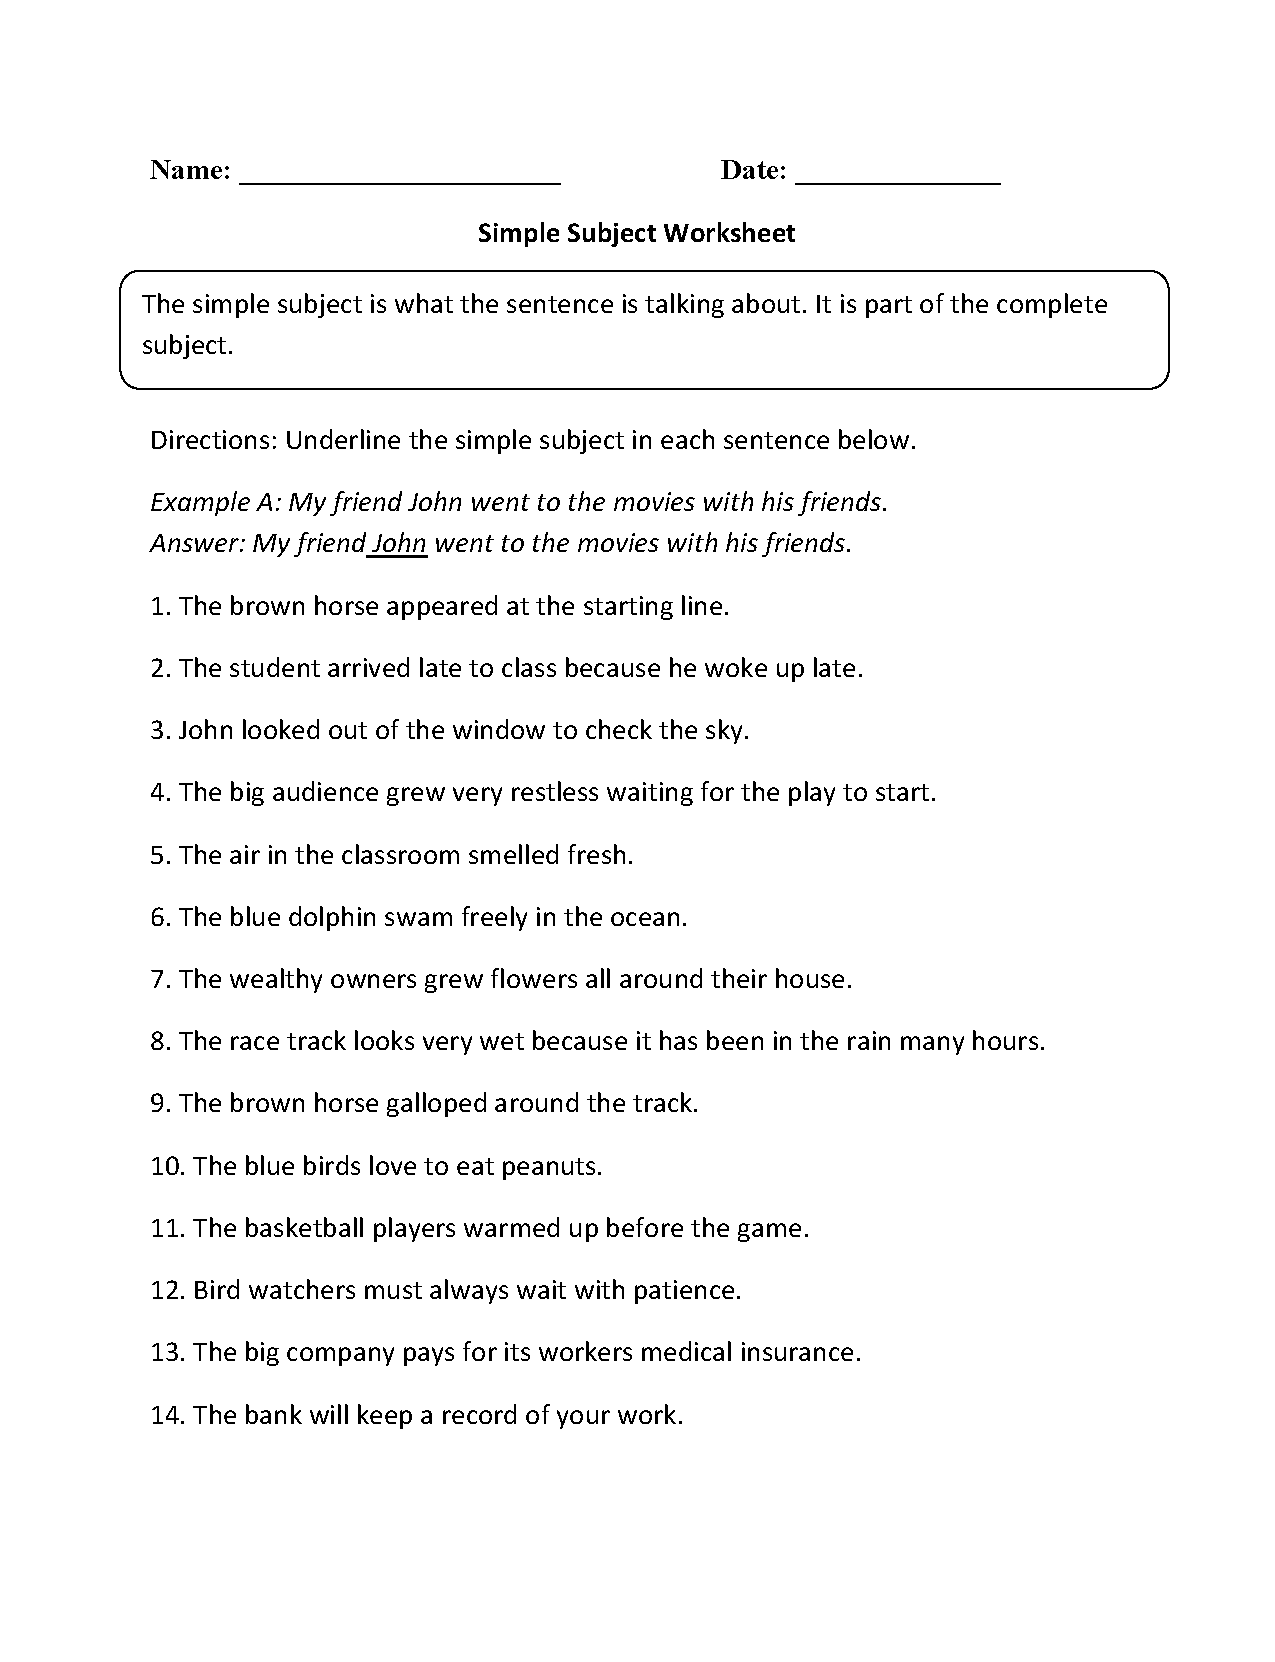 Worksheets Simple Subject And Simple Predicate Worksheets With Answers simple subject worksheet englishlinx com board pinterest worksheets language and arts